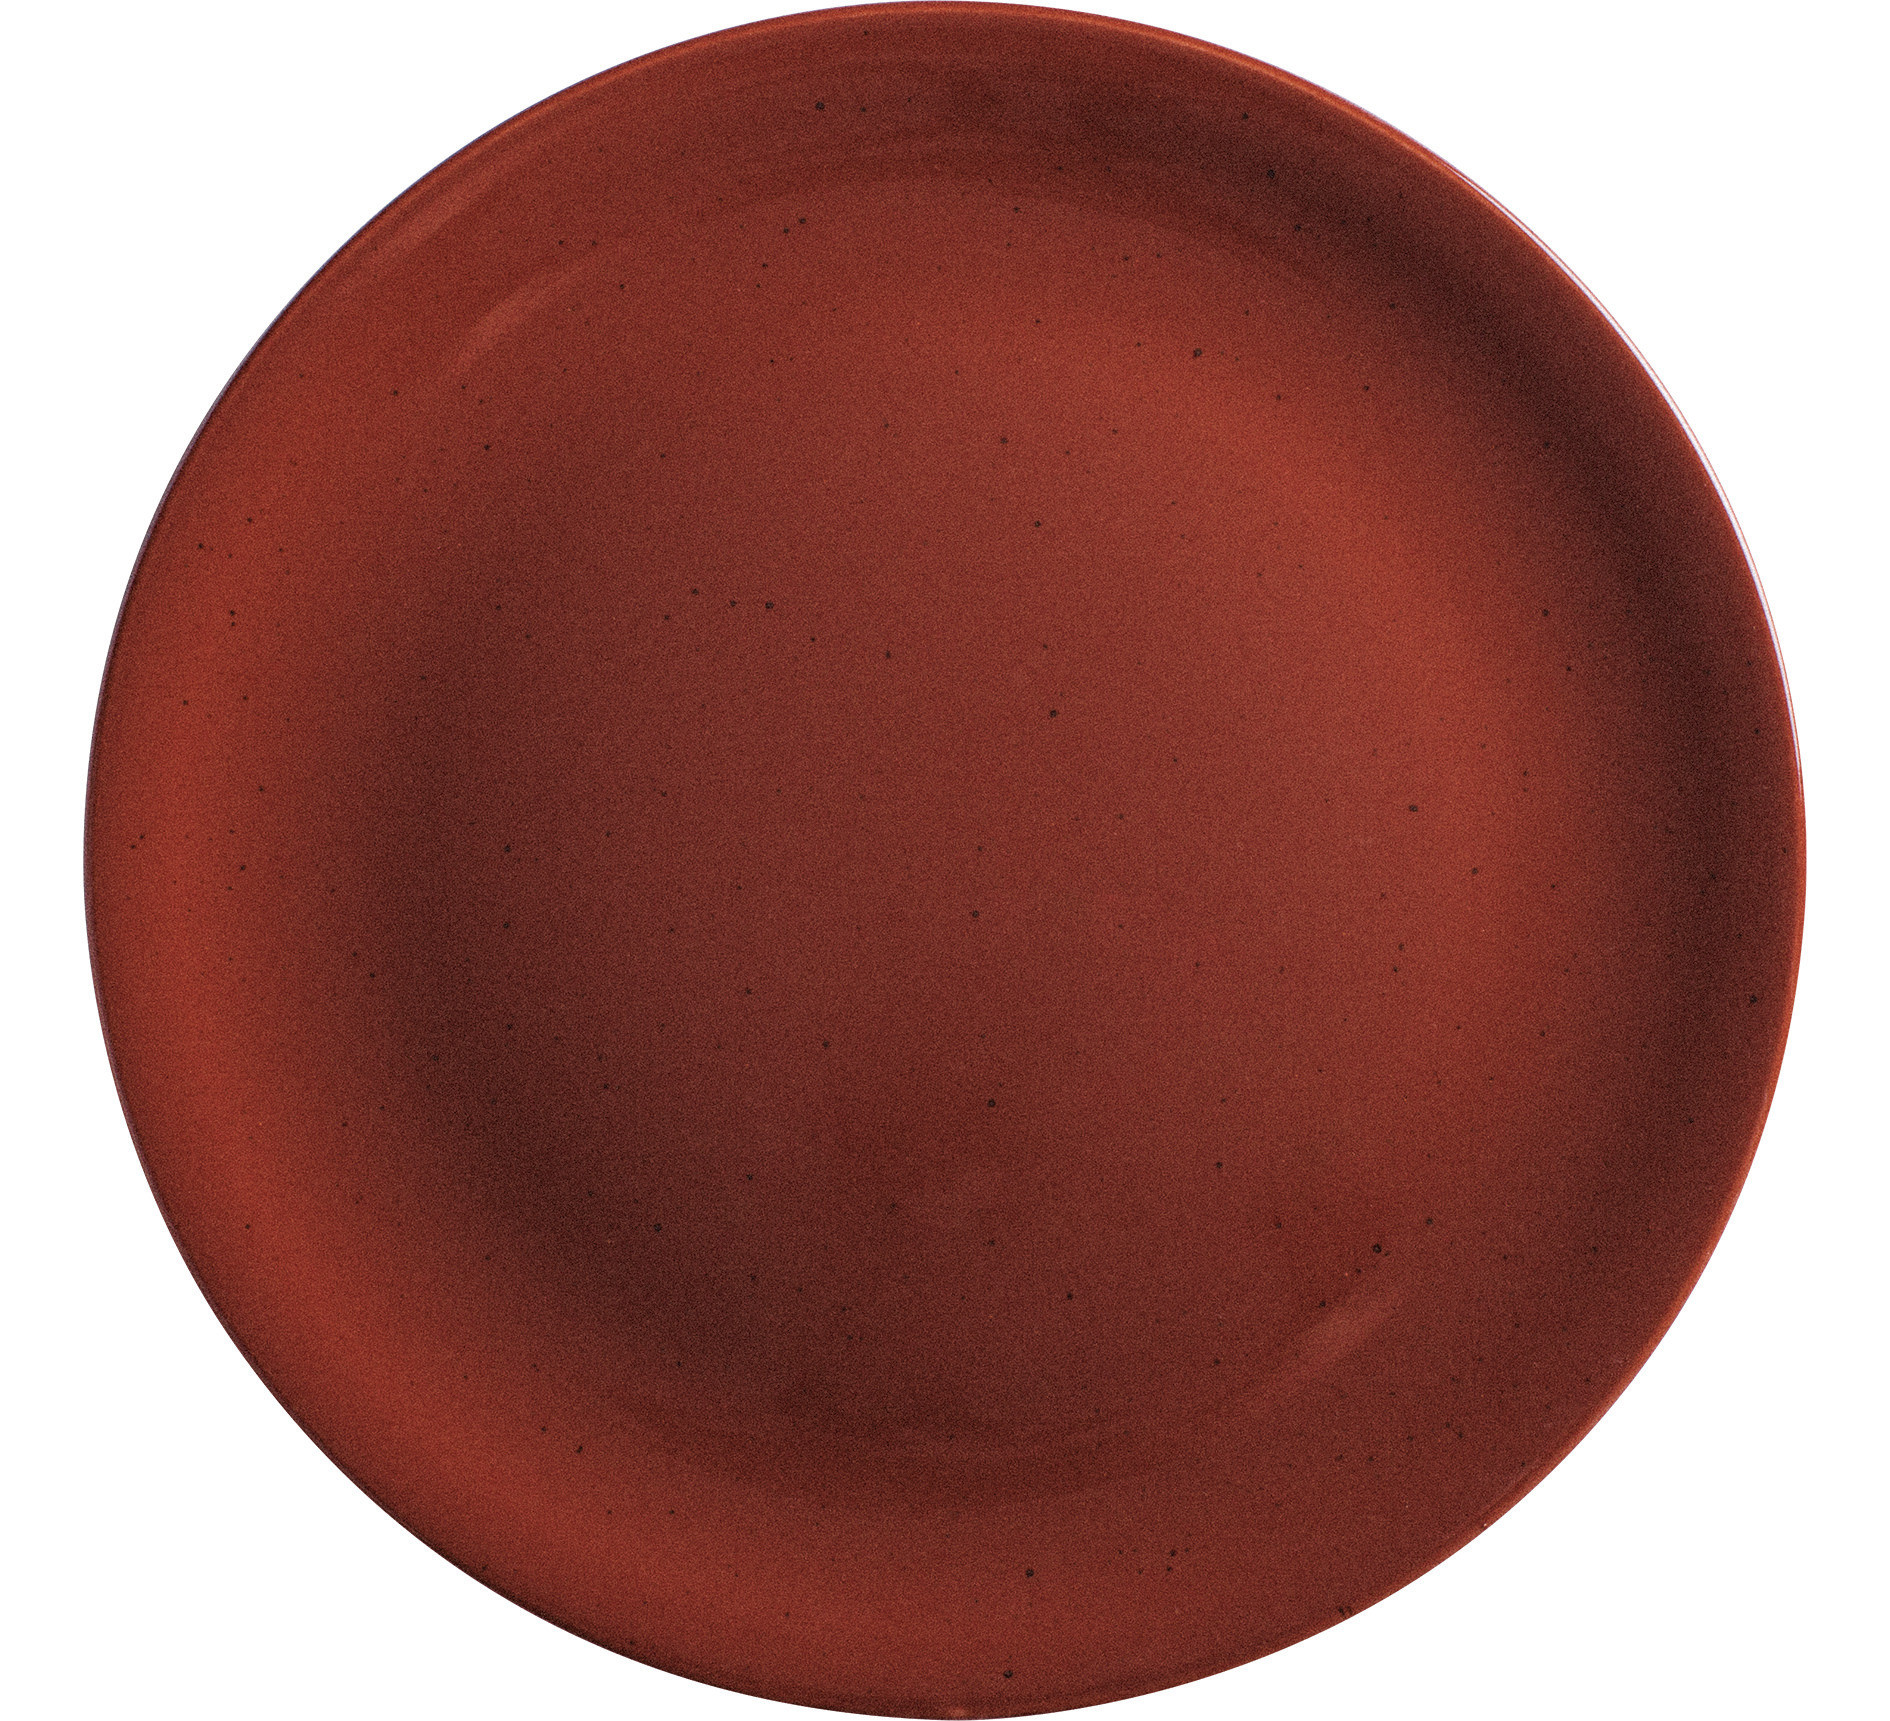 Homestyle, Pizzateller ø 310 mm siena red